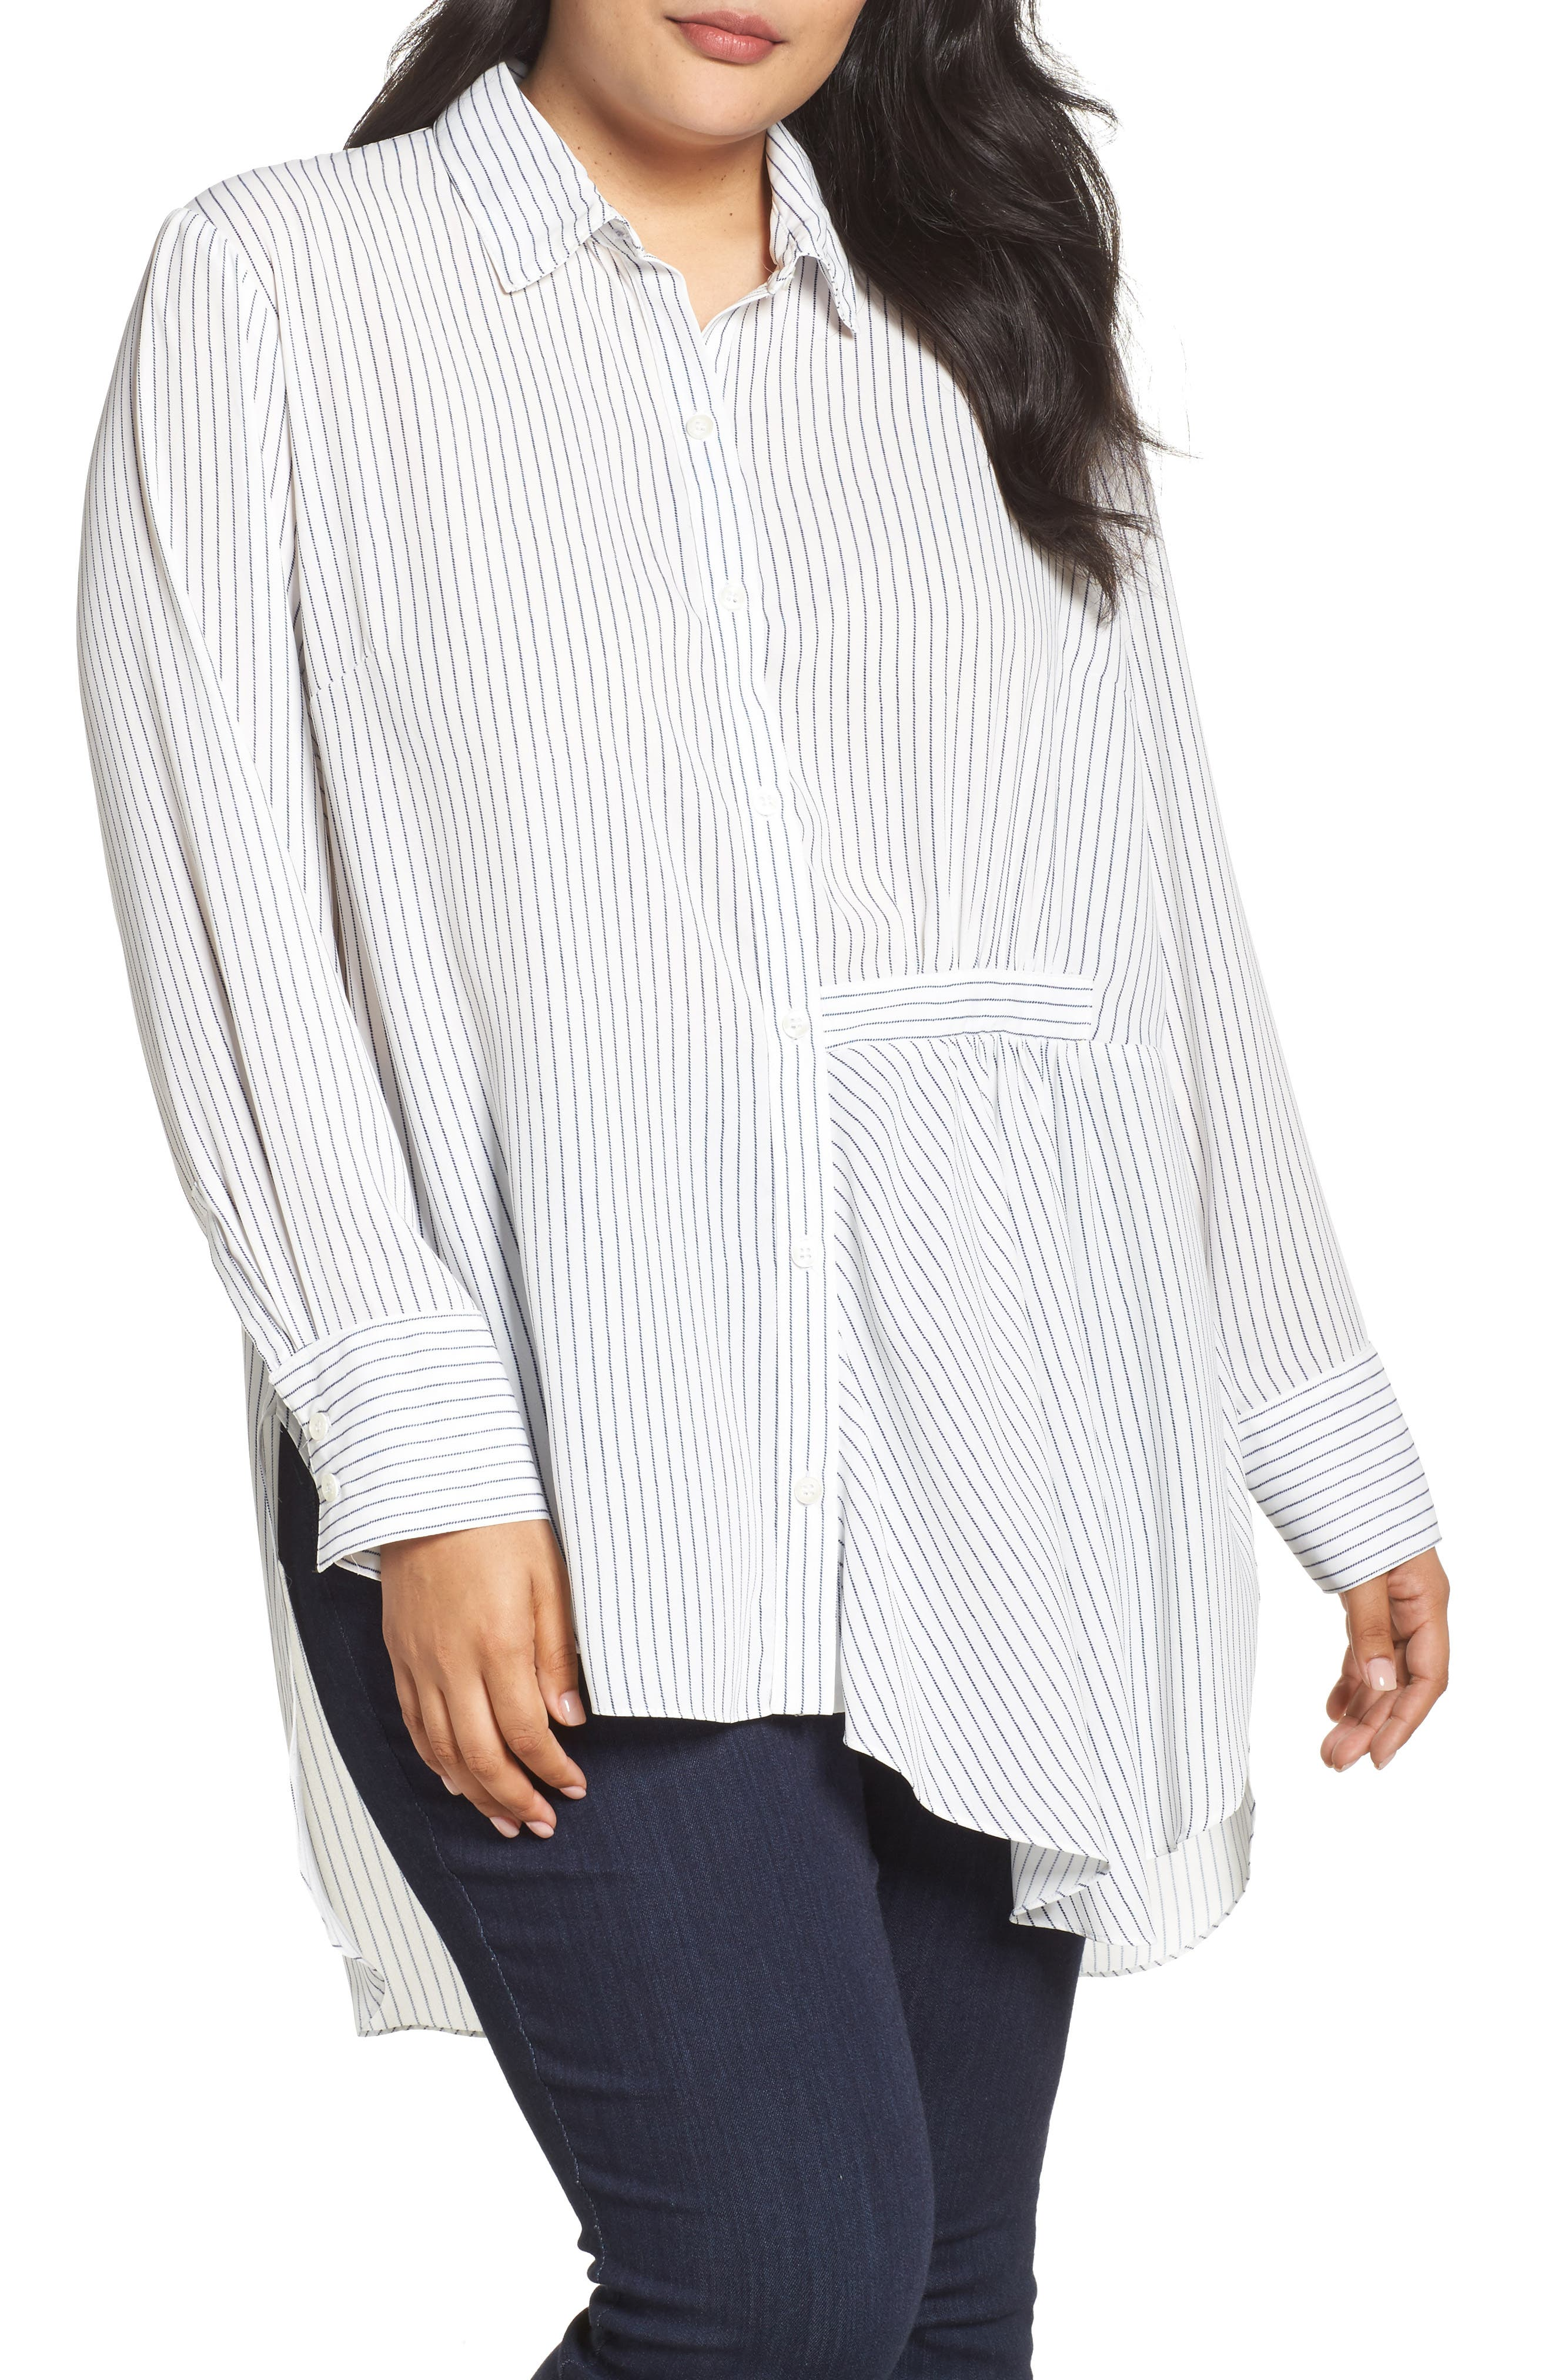 Alternate Image 1 Selected - RACHEL Rachel Roy High/Low Pinstripe Shirt (Plus Size)